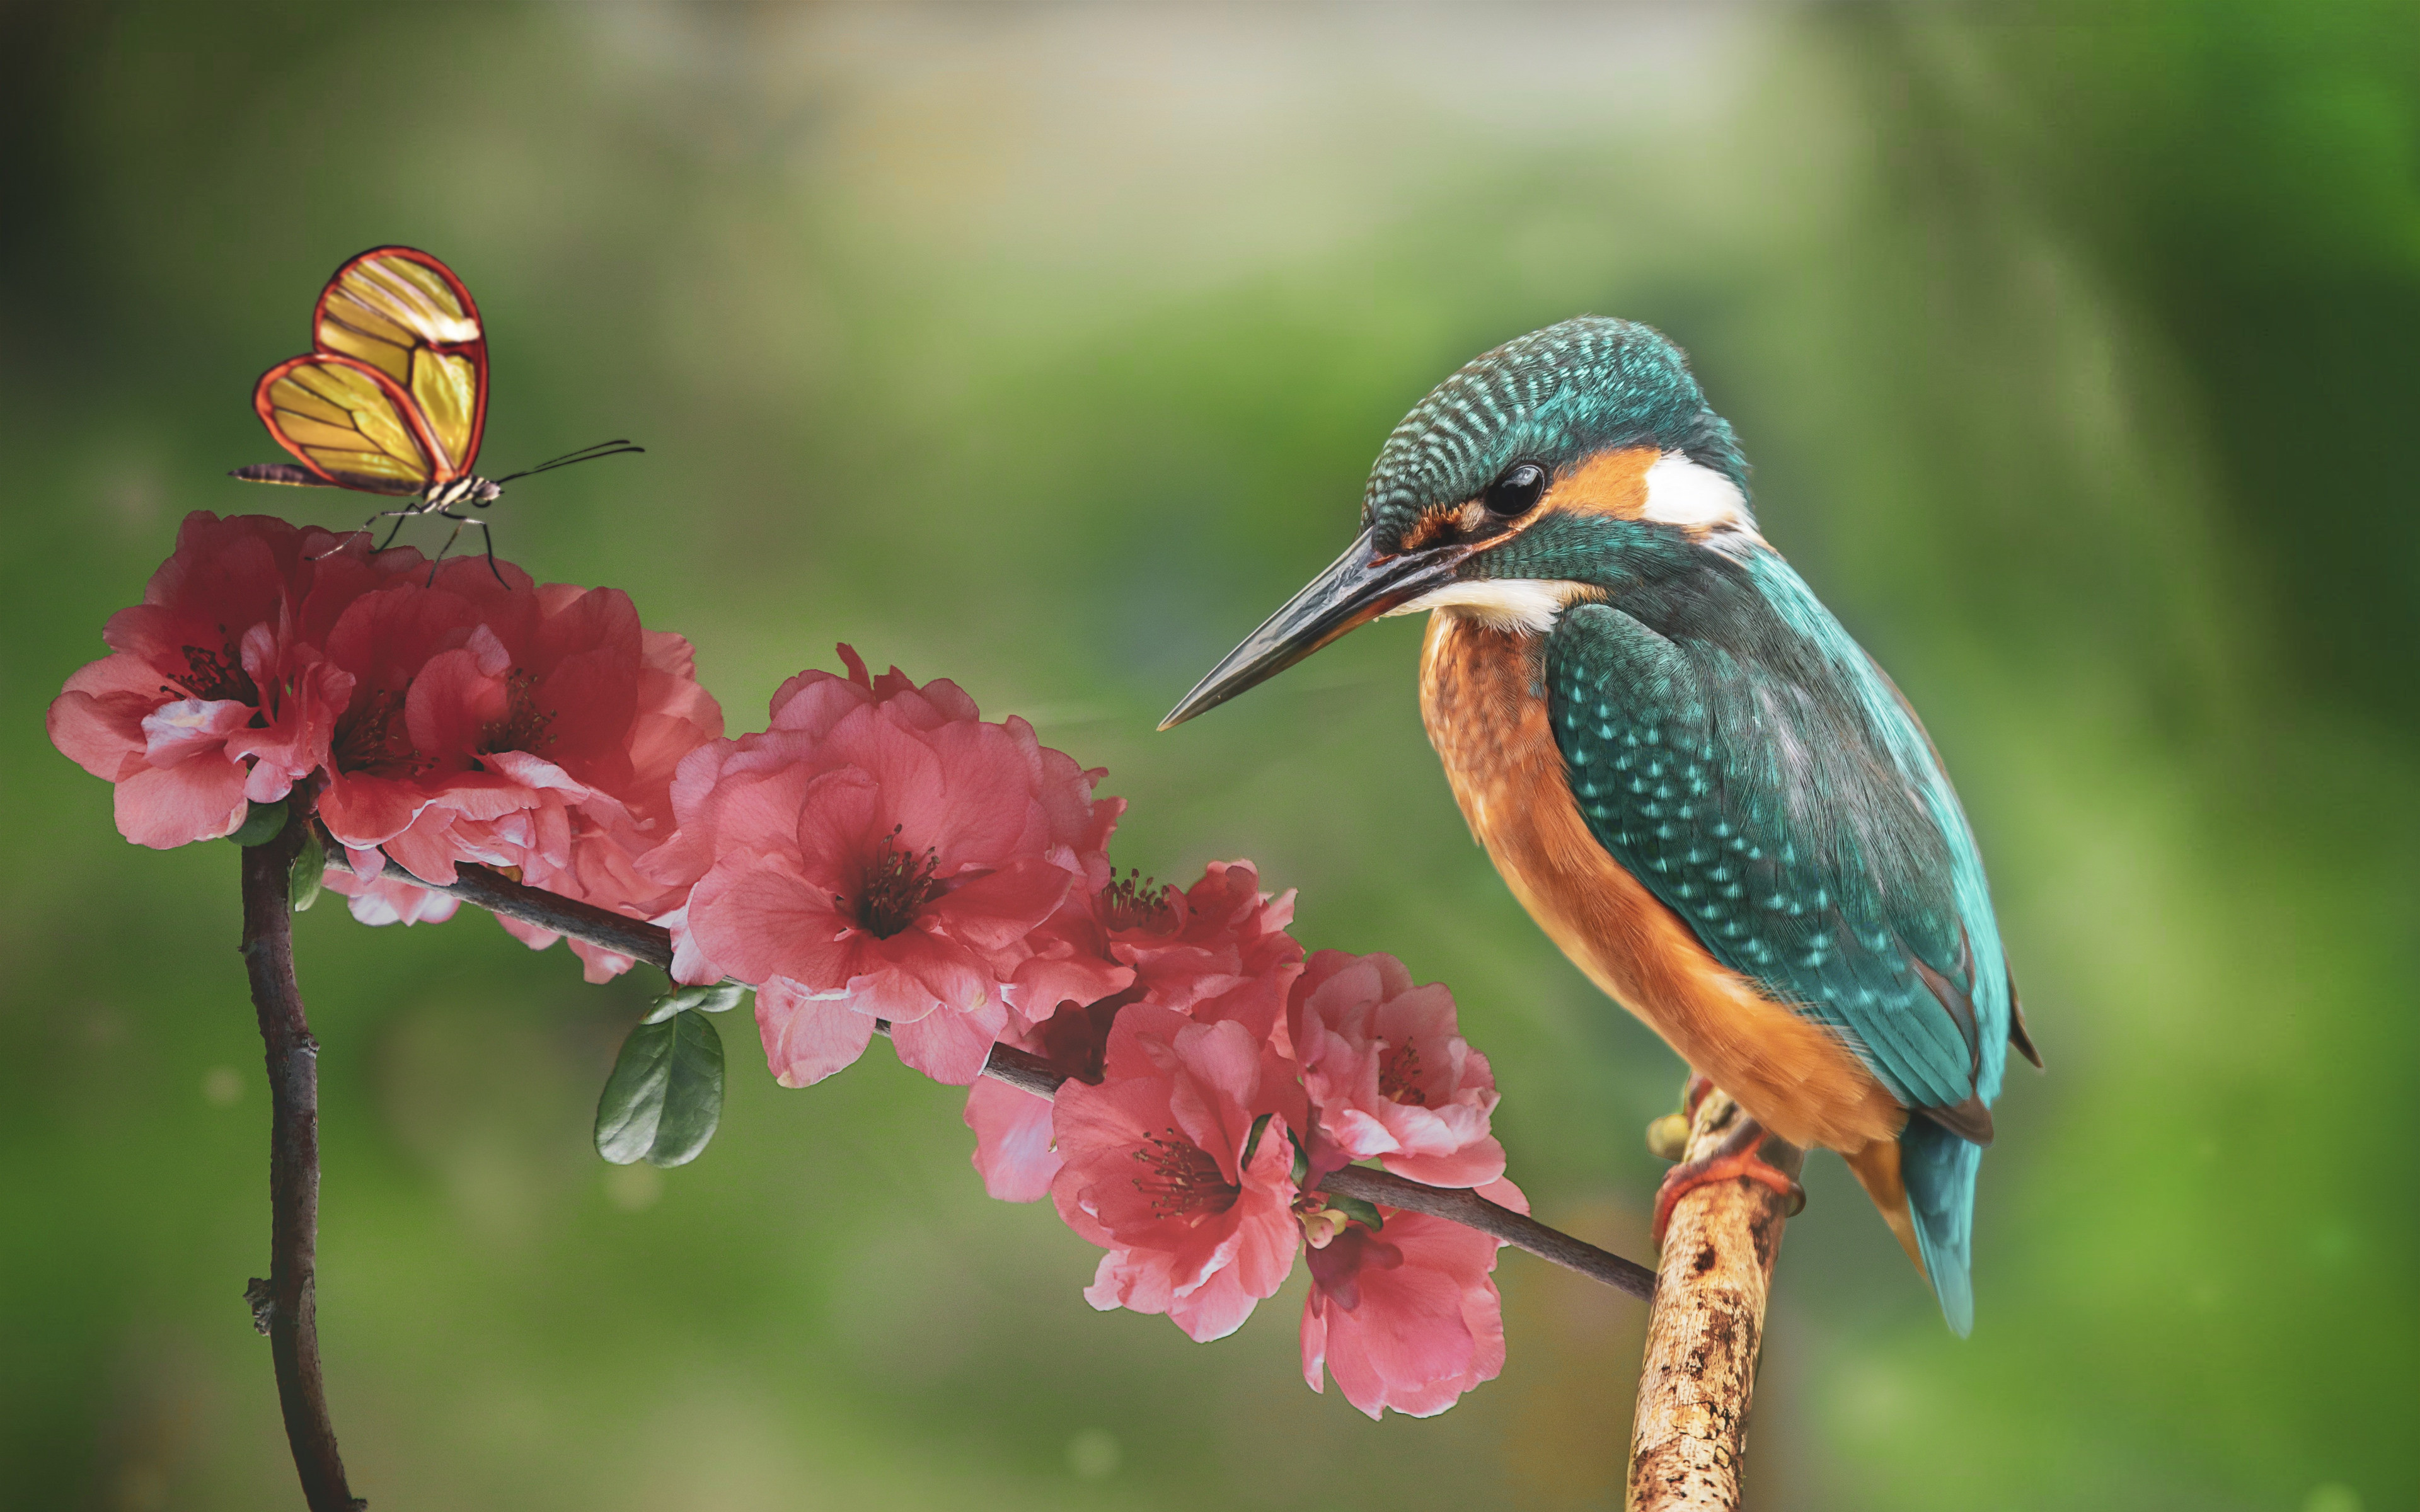 Kingfisher and the butterfly wallpaper 3840x2400